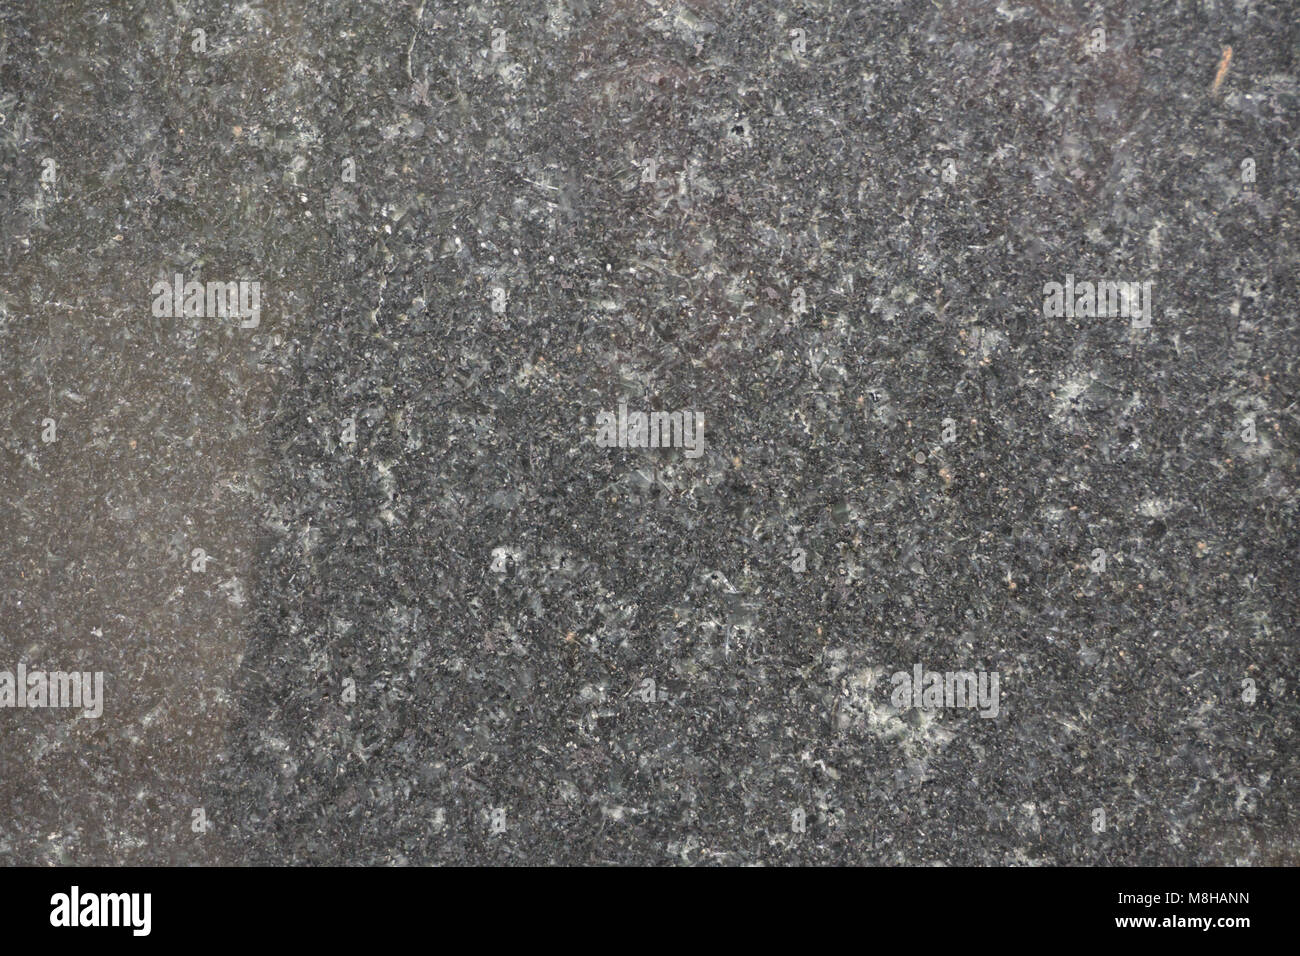 Quartz Sandstone Stock Photos & Quartz Sandstone Stock ... Polished Granite Texture Seamless